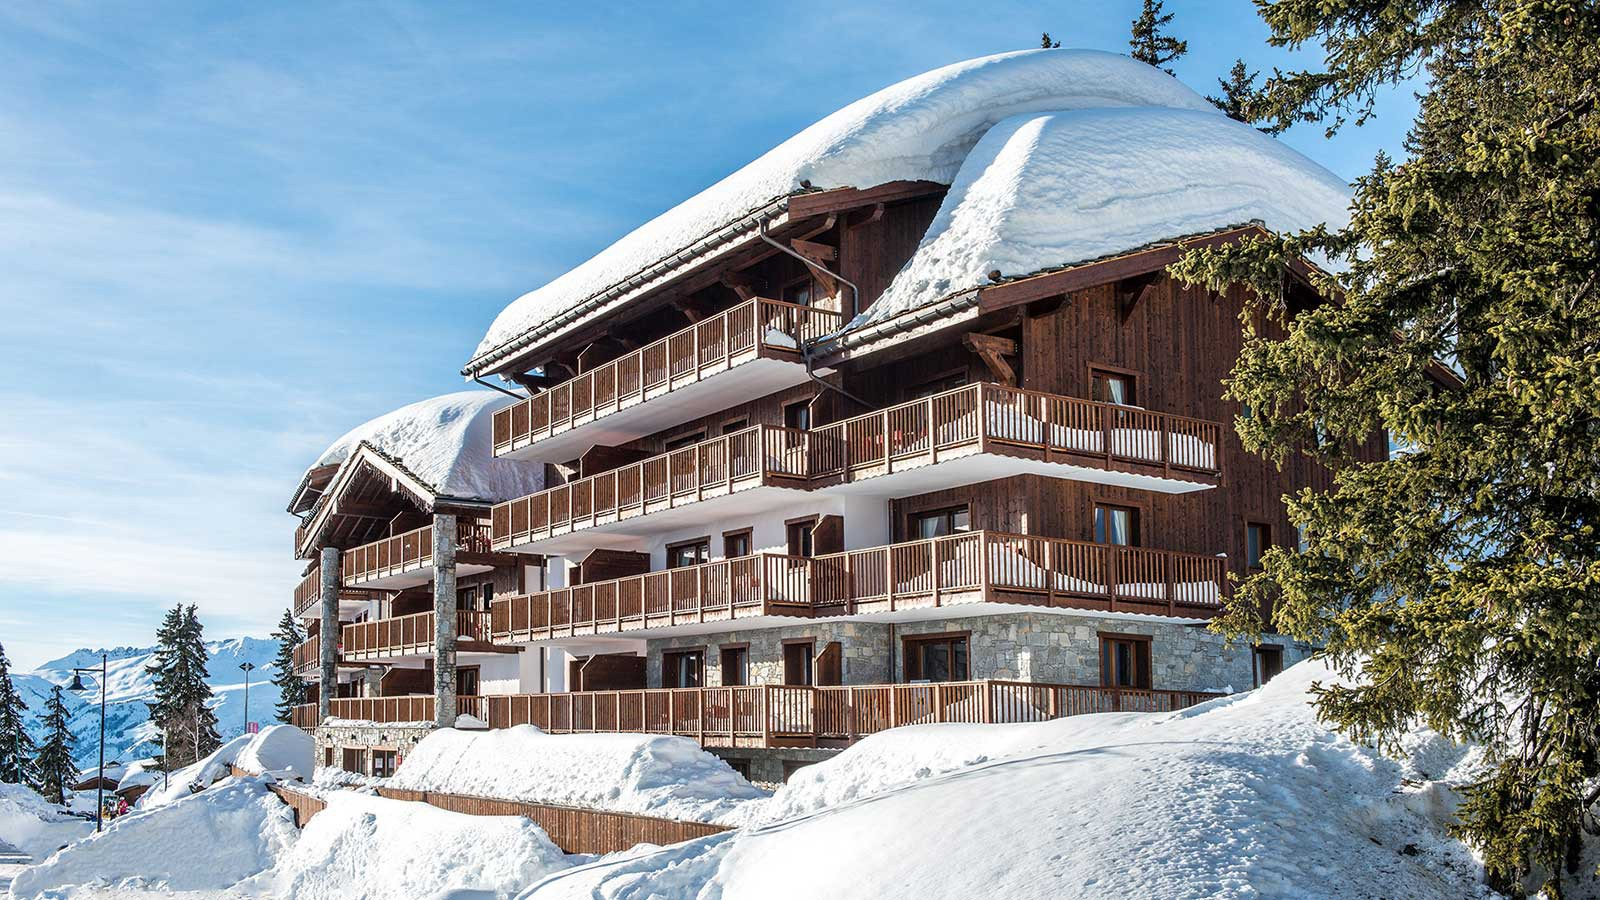 Exterior, Les Marmottons - Ski Apartments in La Rosiere, France